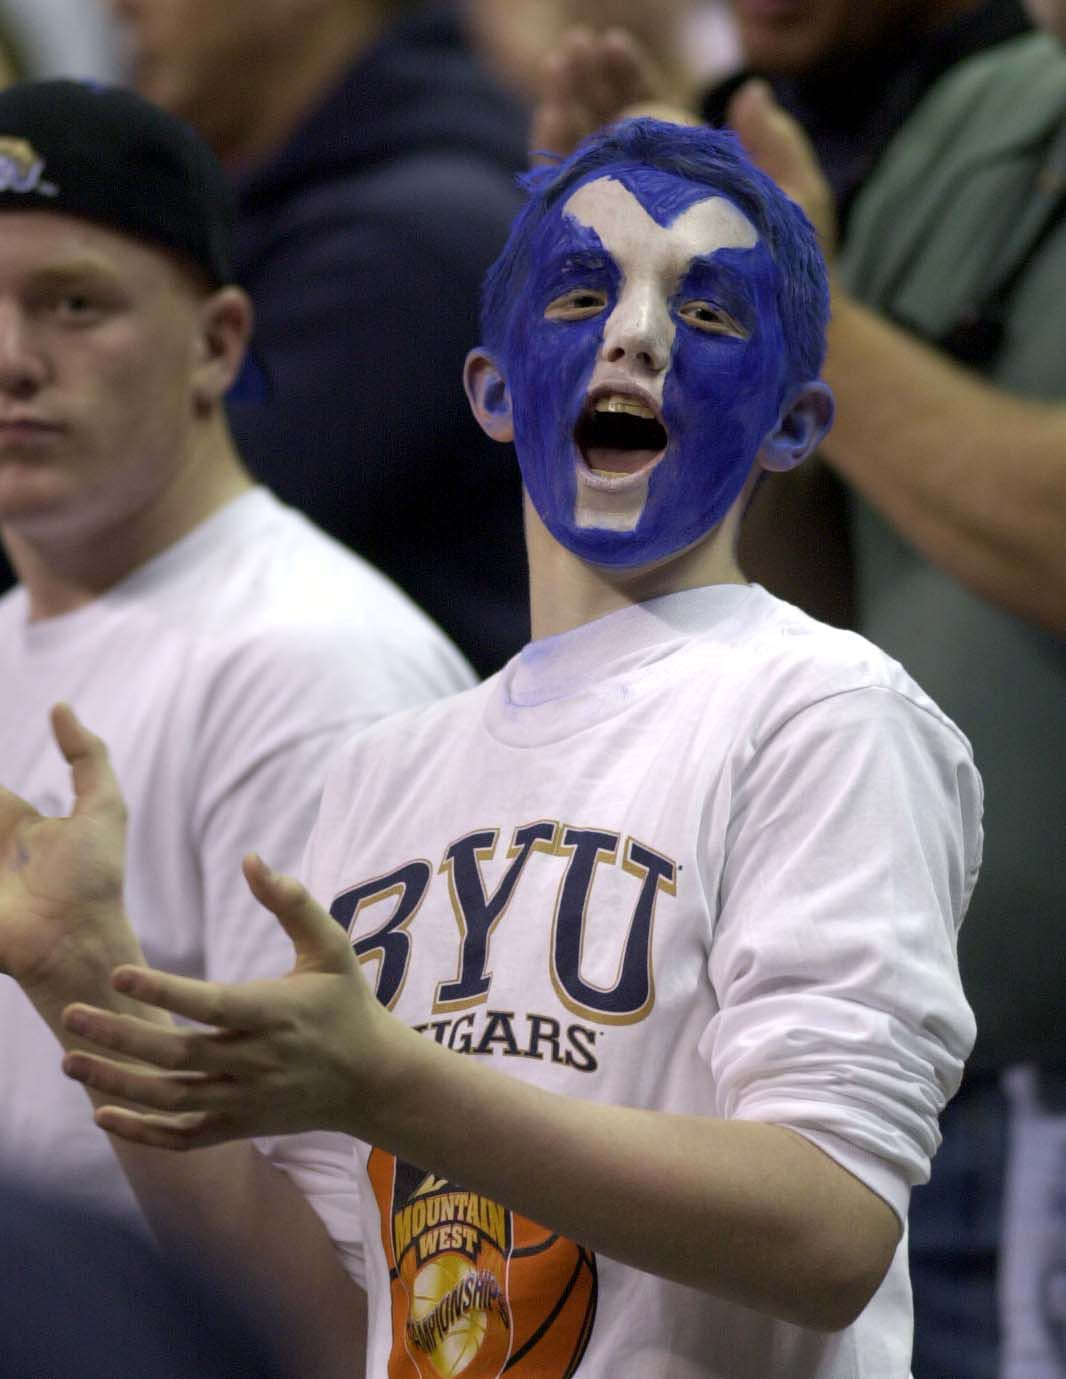 BYU fan Brett Dodge cheers his team during game against New Mexico in the MWC Tournament championship game.